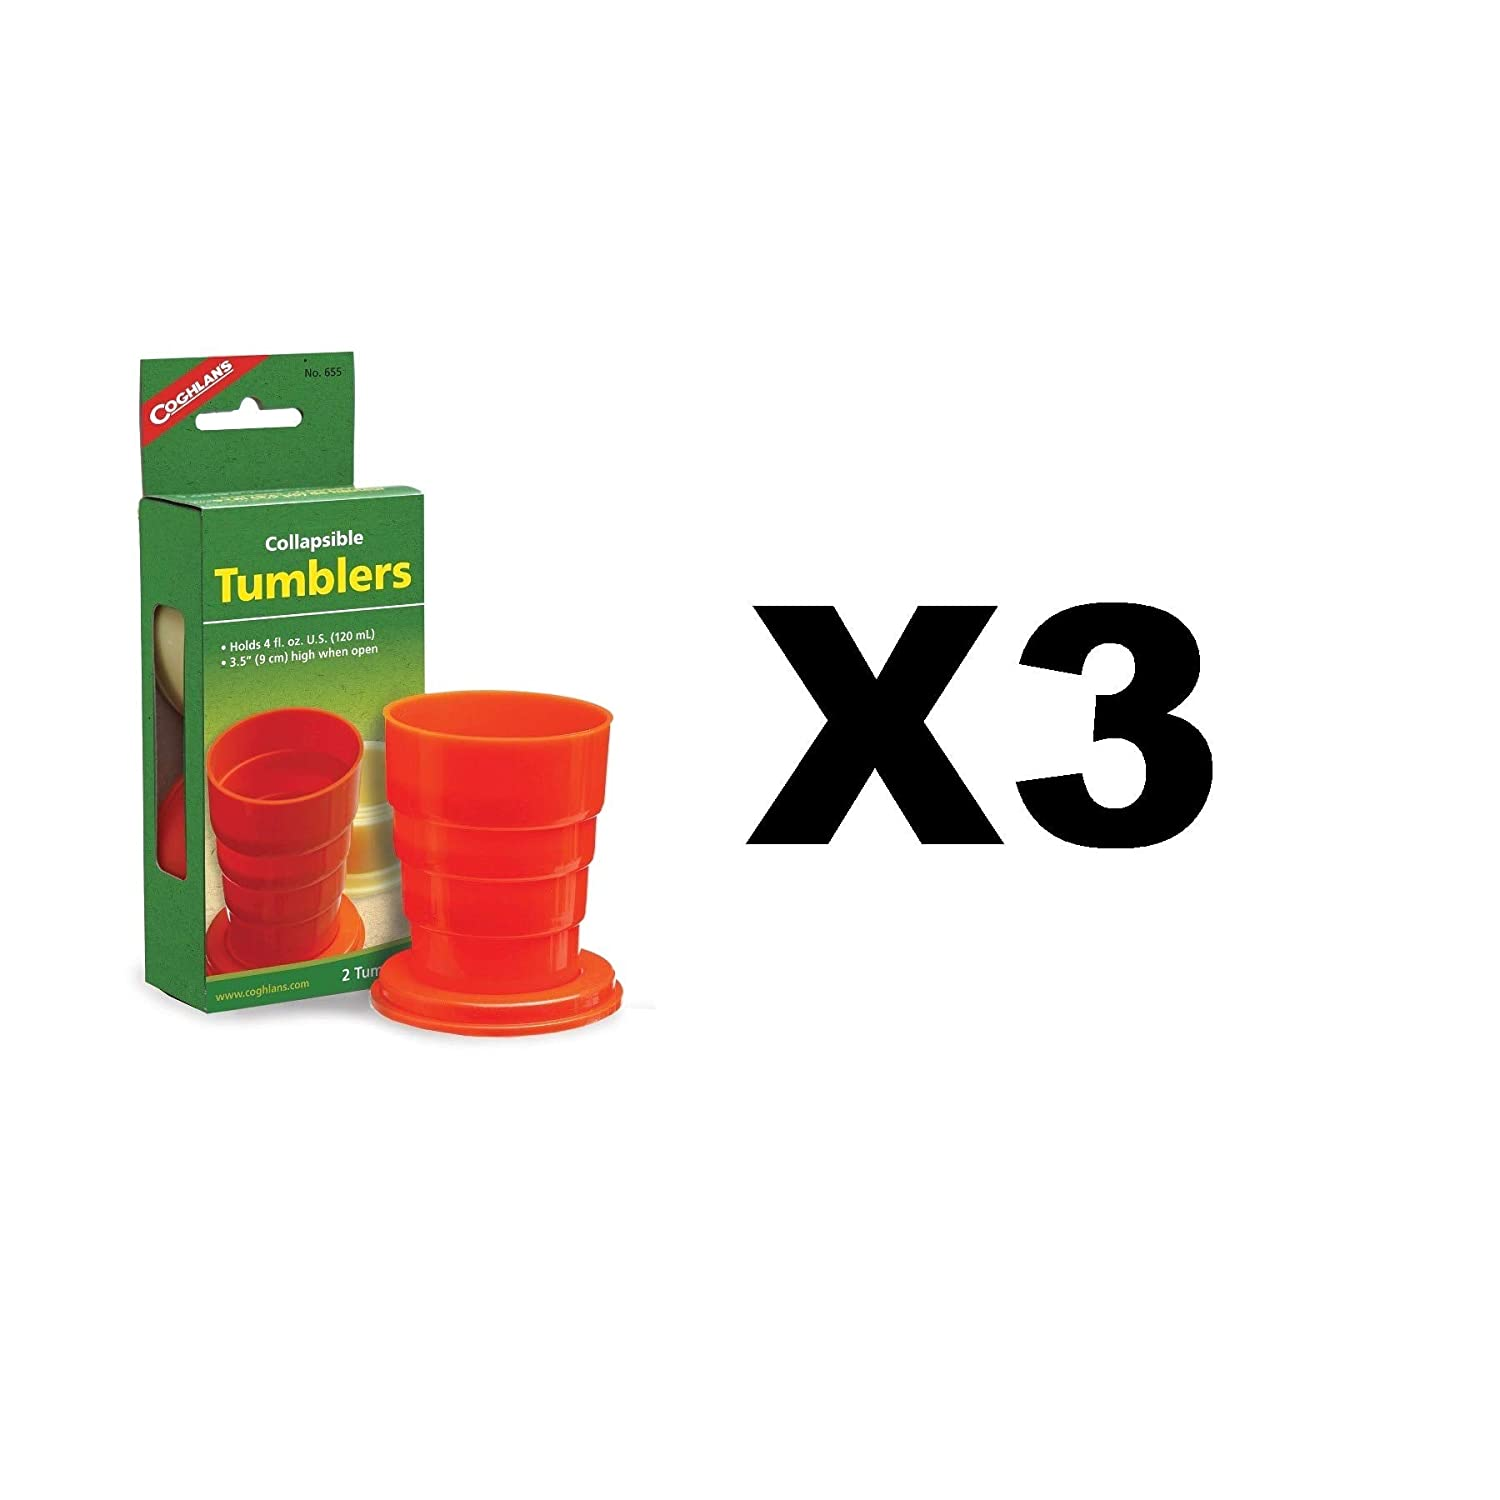 Coghlan 's Collapsible Tumblers強力カラフルプラスチックキャンプ( 3 - Pack of 2 ) B01MXYCAQ9